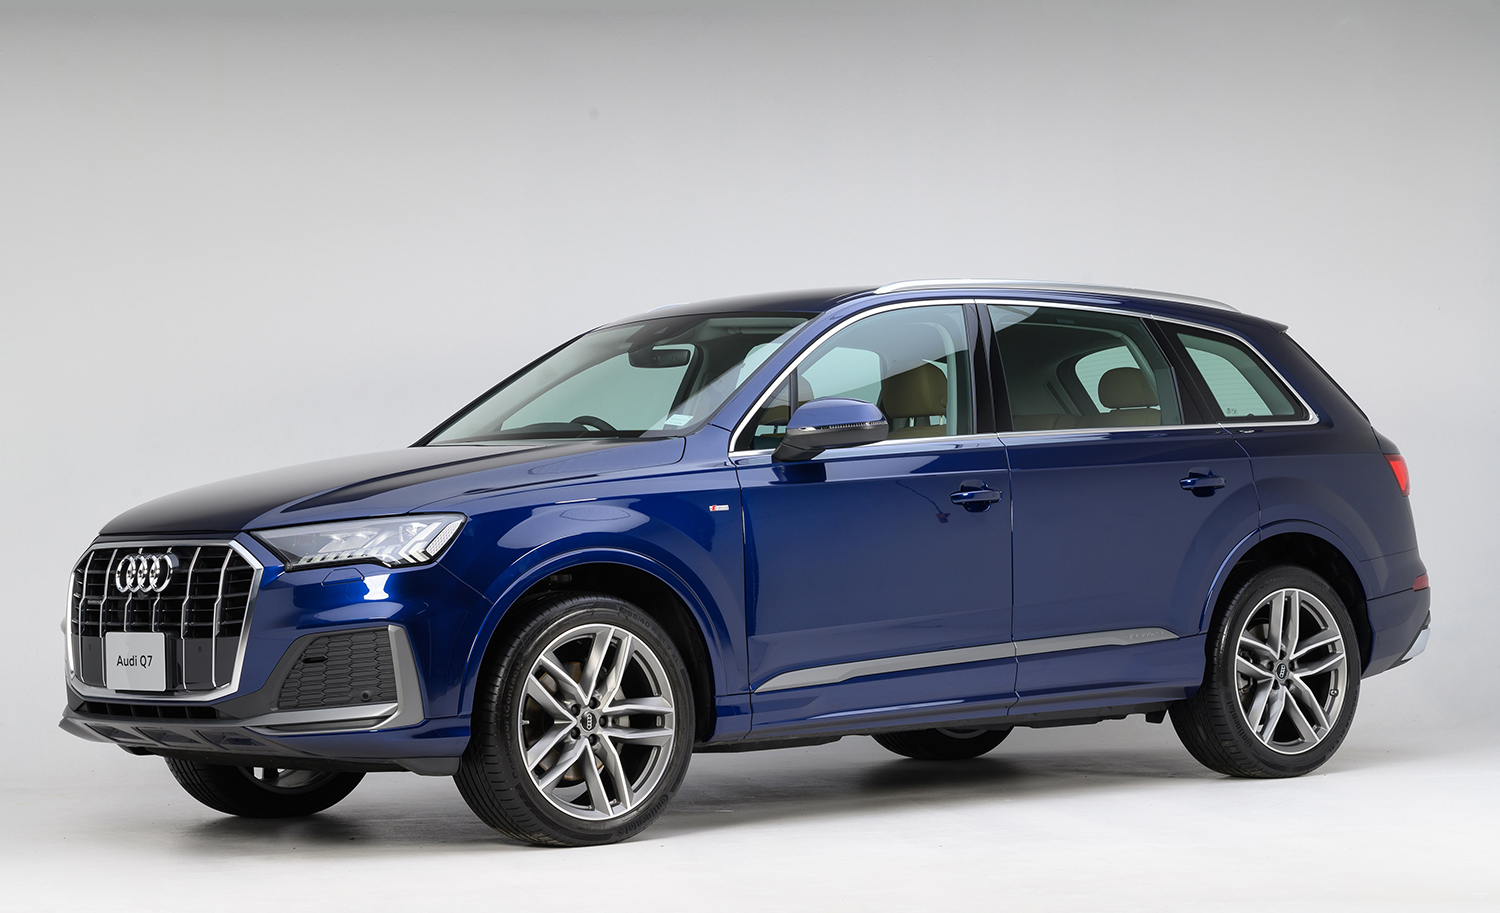 2020 Audi Q7 Facelift Thai Prices And Specs